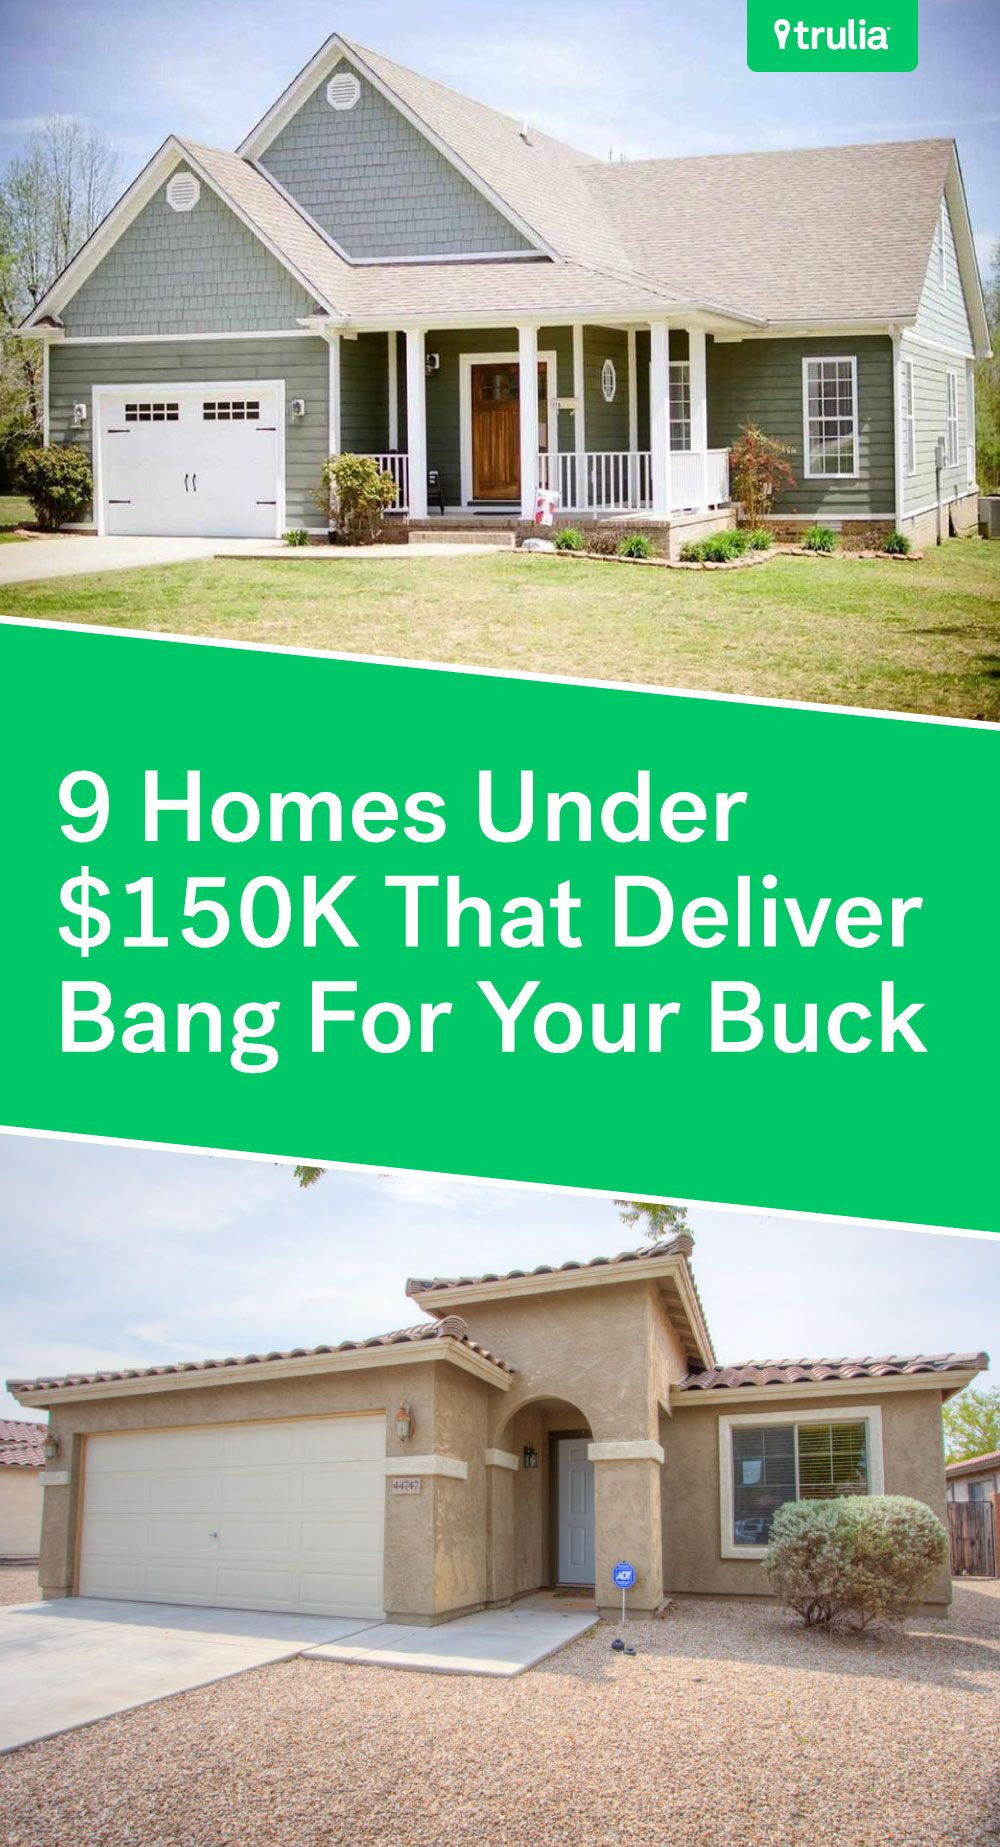 Can I Build A House for $150 000 Awesome 9 Affordable Houses Priced Under $150k — Real Estate 101